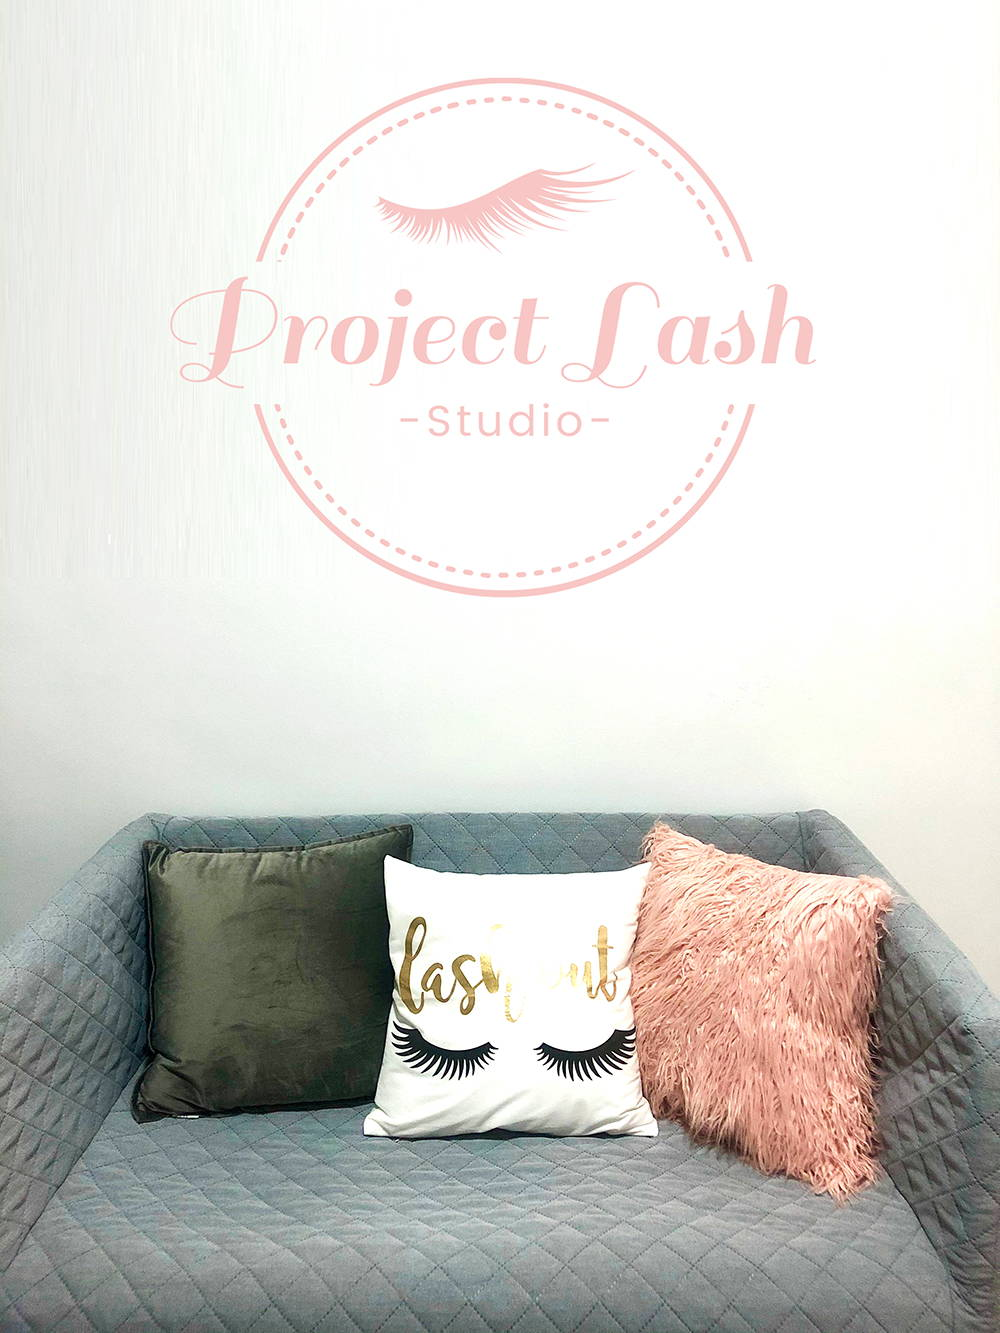 Project Lash Studio Singapore - Best Korean Eyelash Extension Services in Bukit Panjang